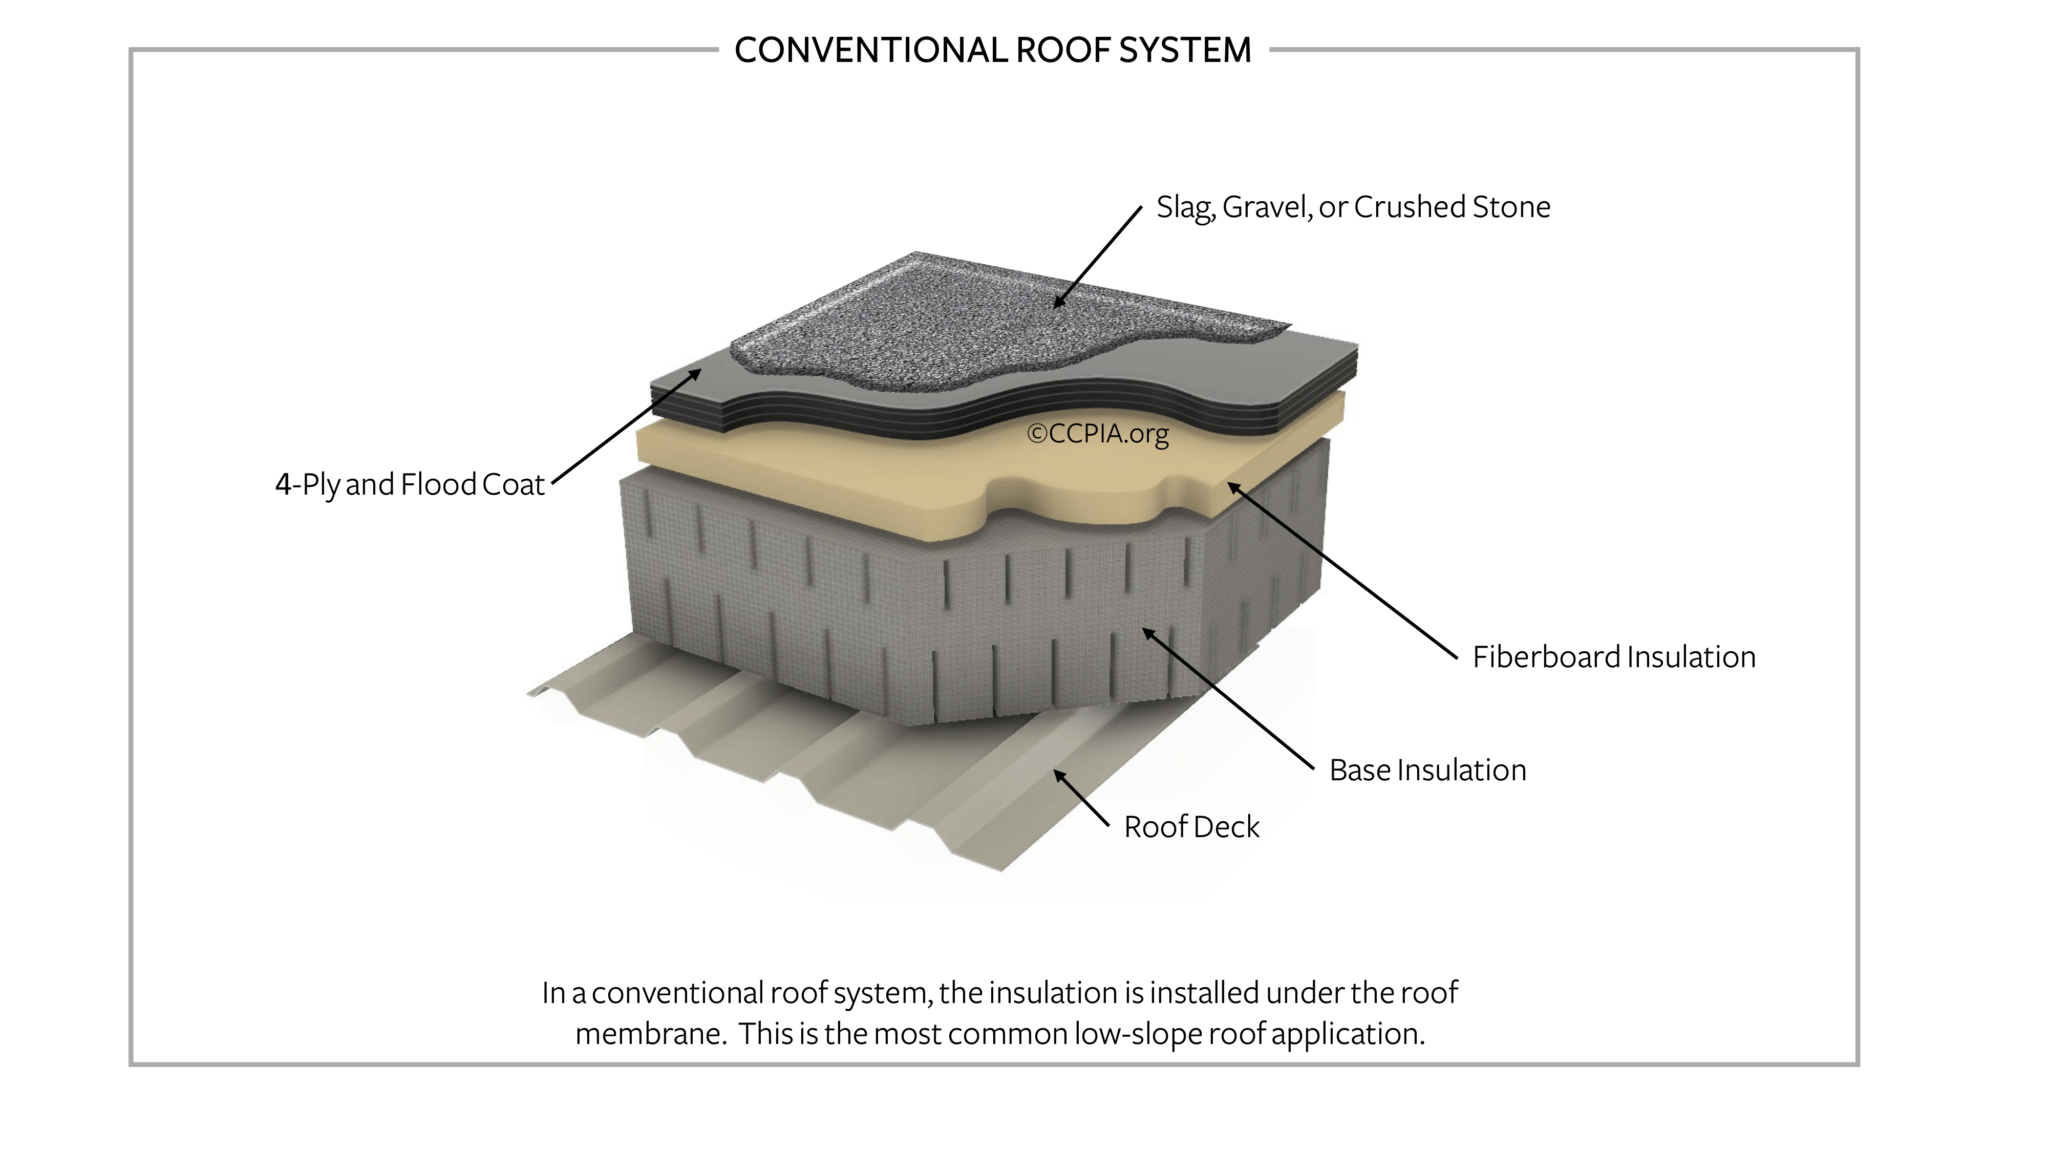 Conventional Roof System (Low-Slope / Flat Roof)